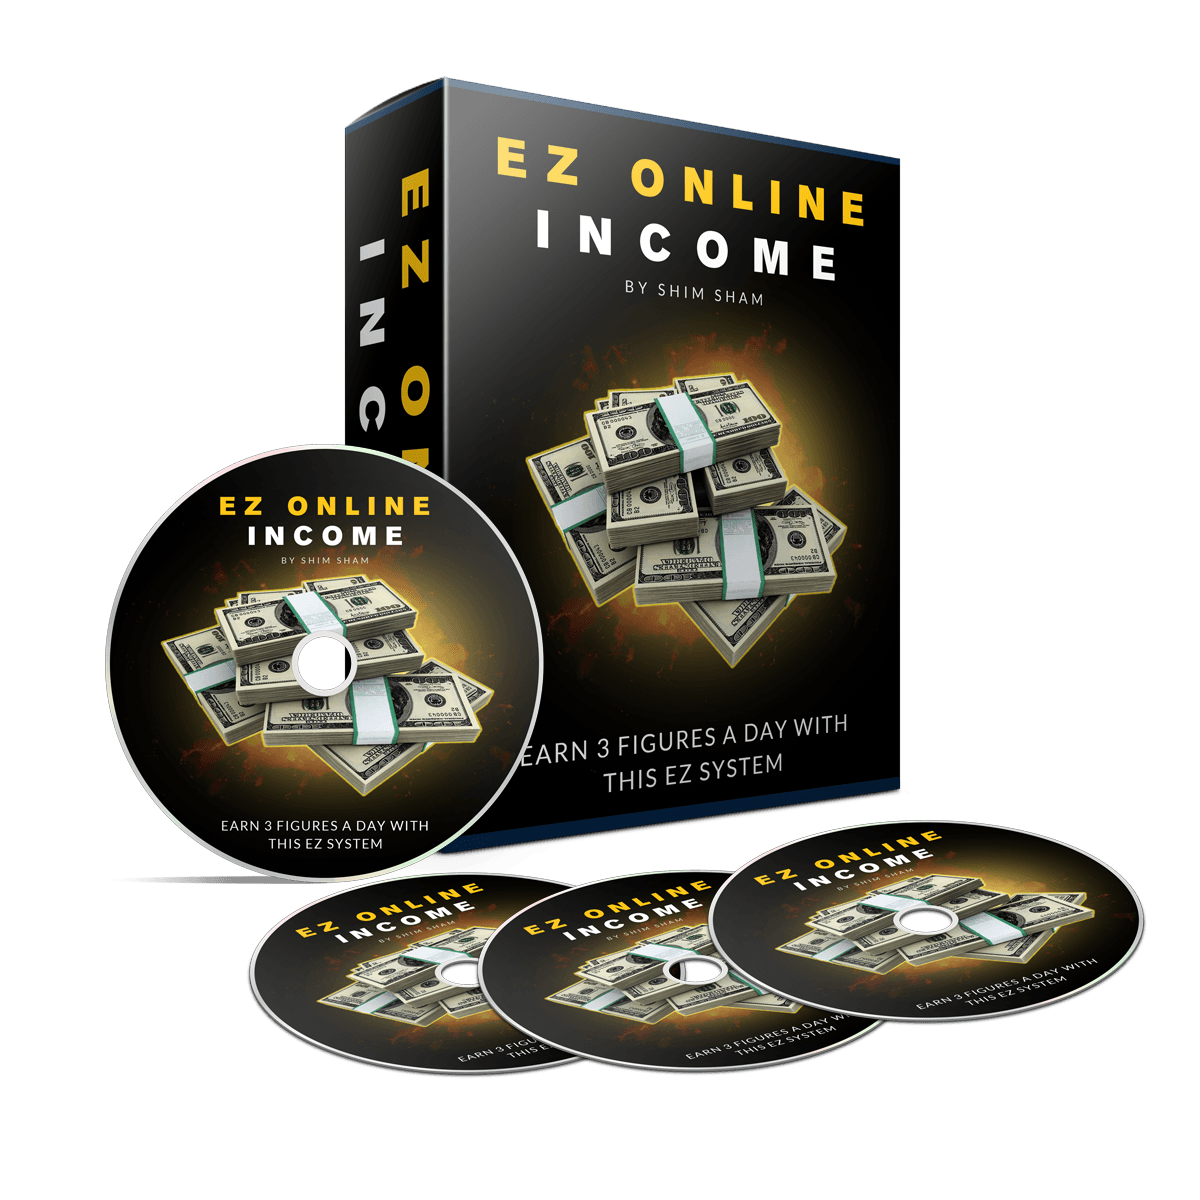 EZ Online Income Review – GET BONUSES: A Simple Method For Going From Zero To $127.36 Per Day